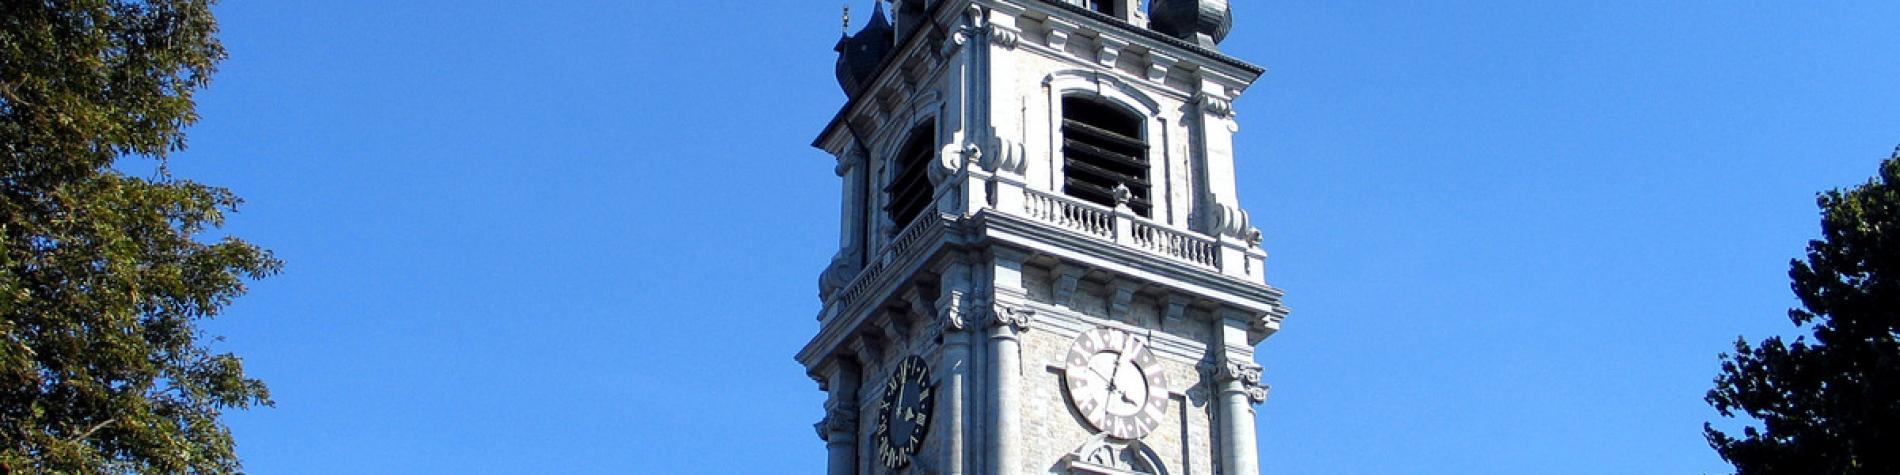 Mons autrement - The Belfry - UNESCO world heritage